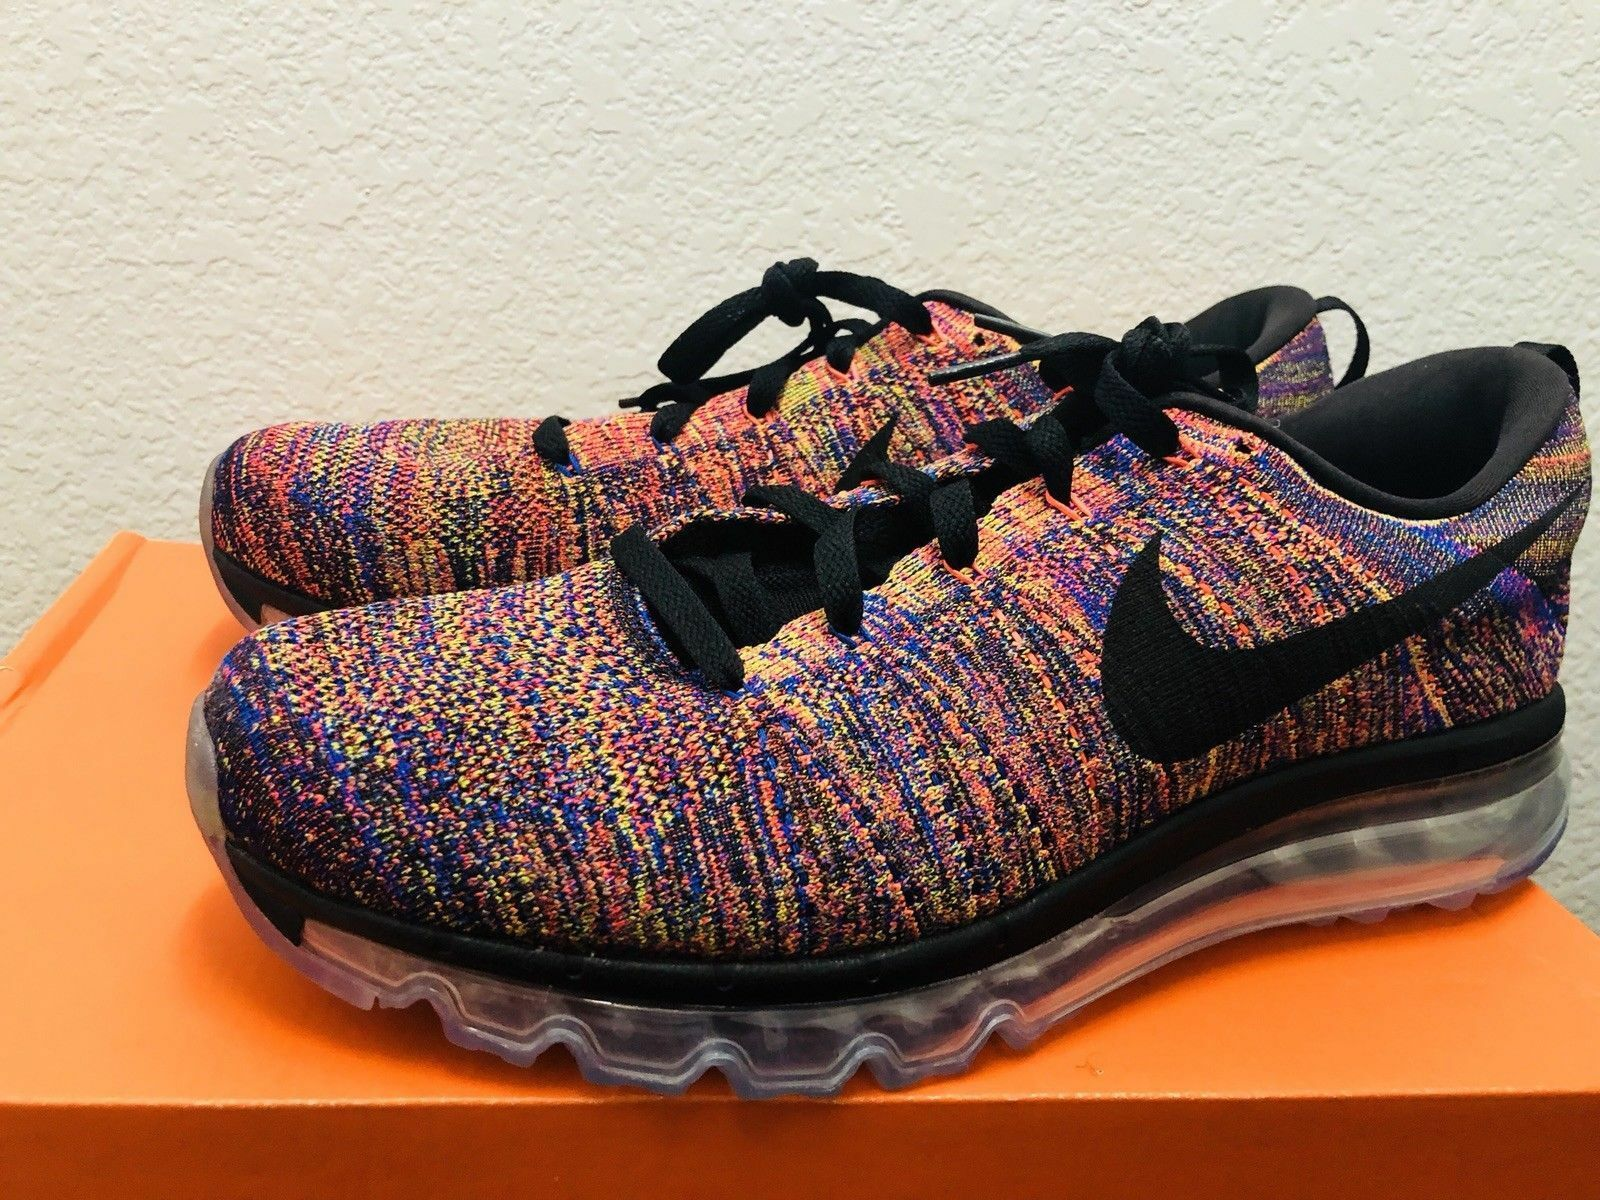 Nike Flyknit Max Running shoes Multi-color Crimson Black ( 620469-012 ) SZ 12.5